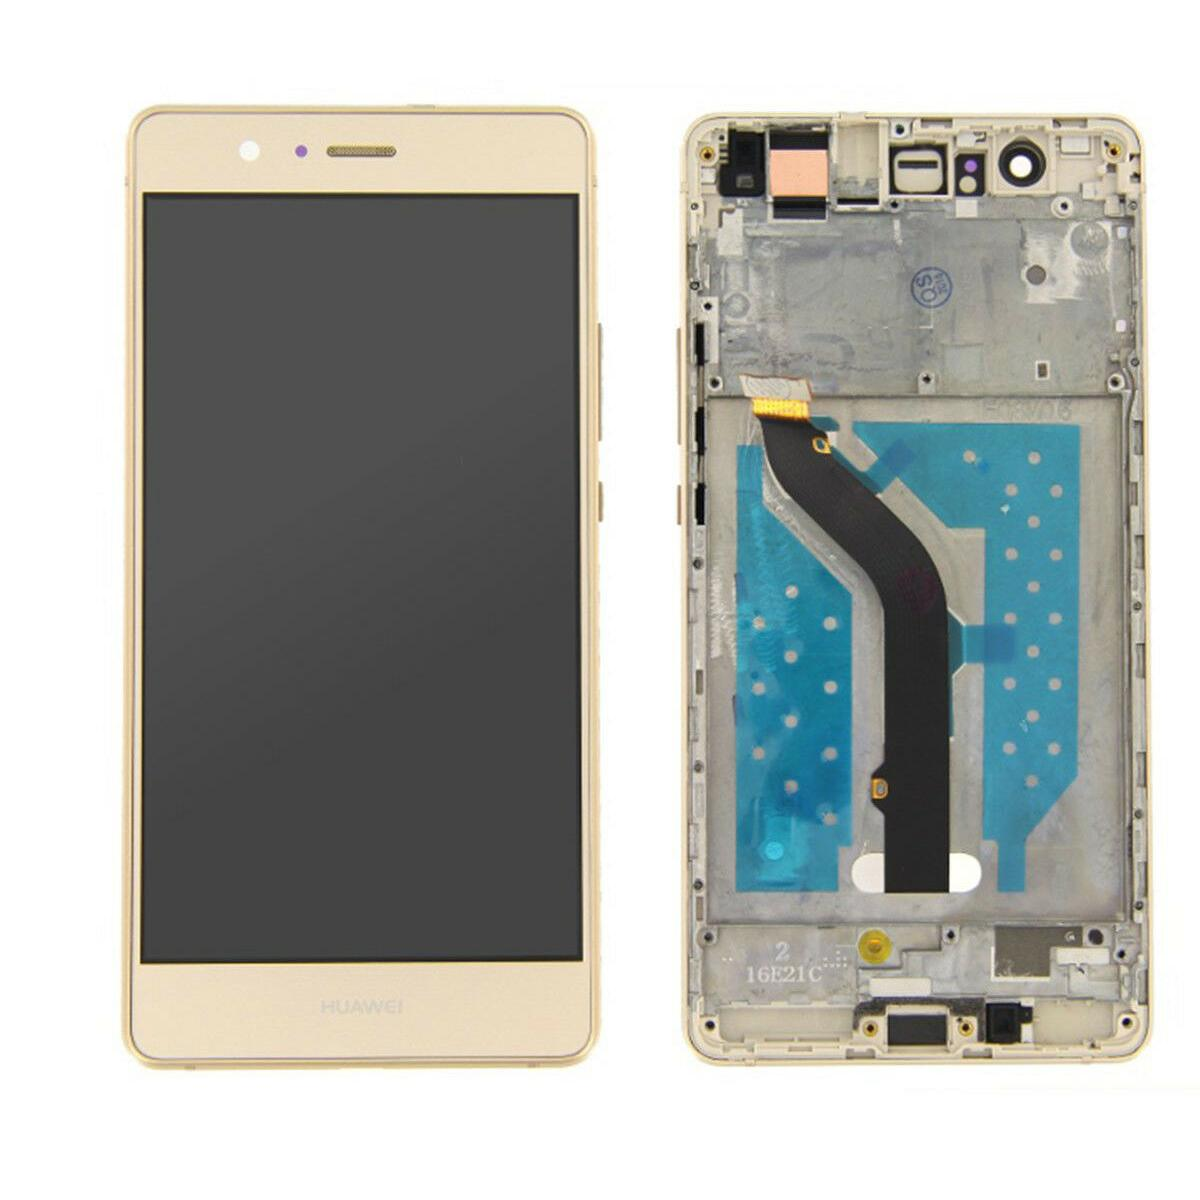 TOUCH SCREEN LCD DISPLAY FRAME HUAWEI P9 LITE gold +colla B7000 kit 9 in 1 e biadesivo